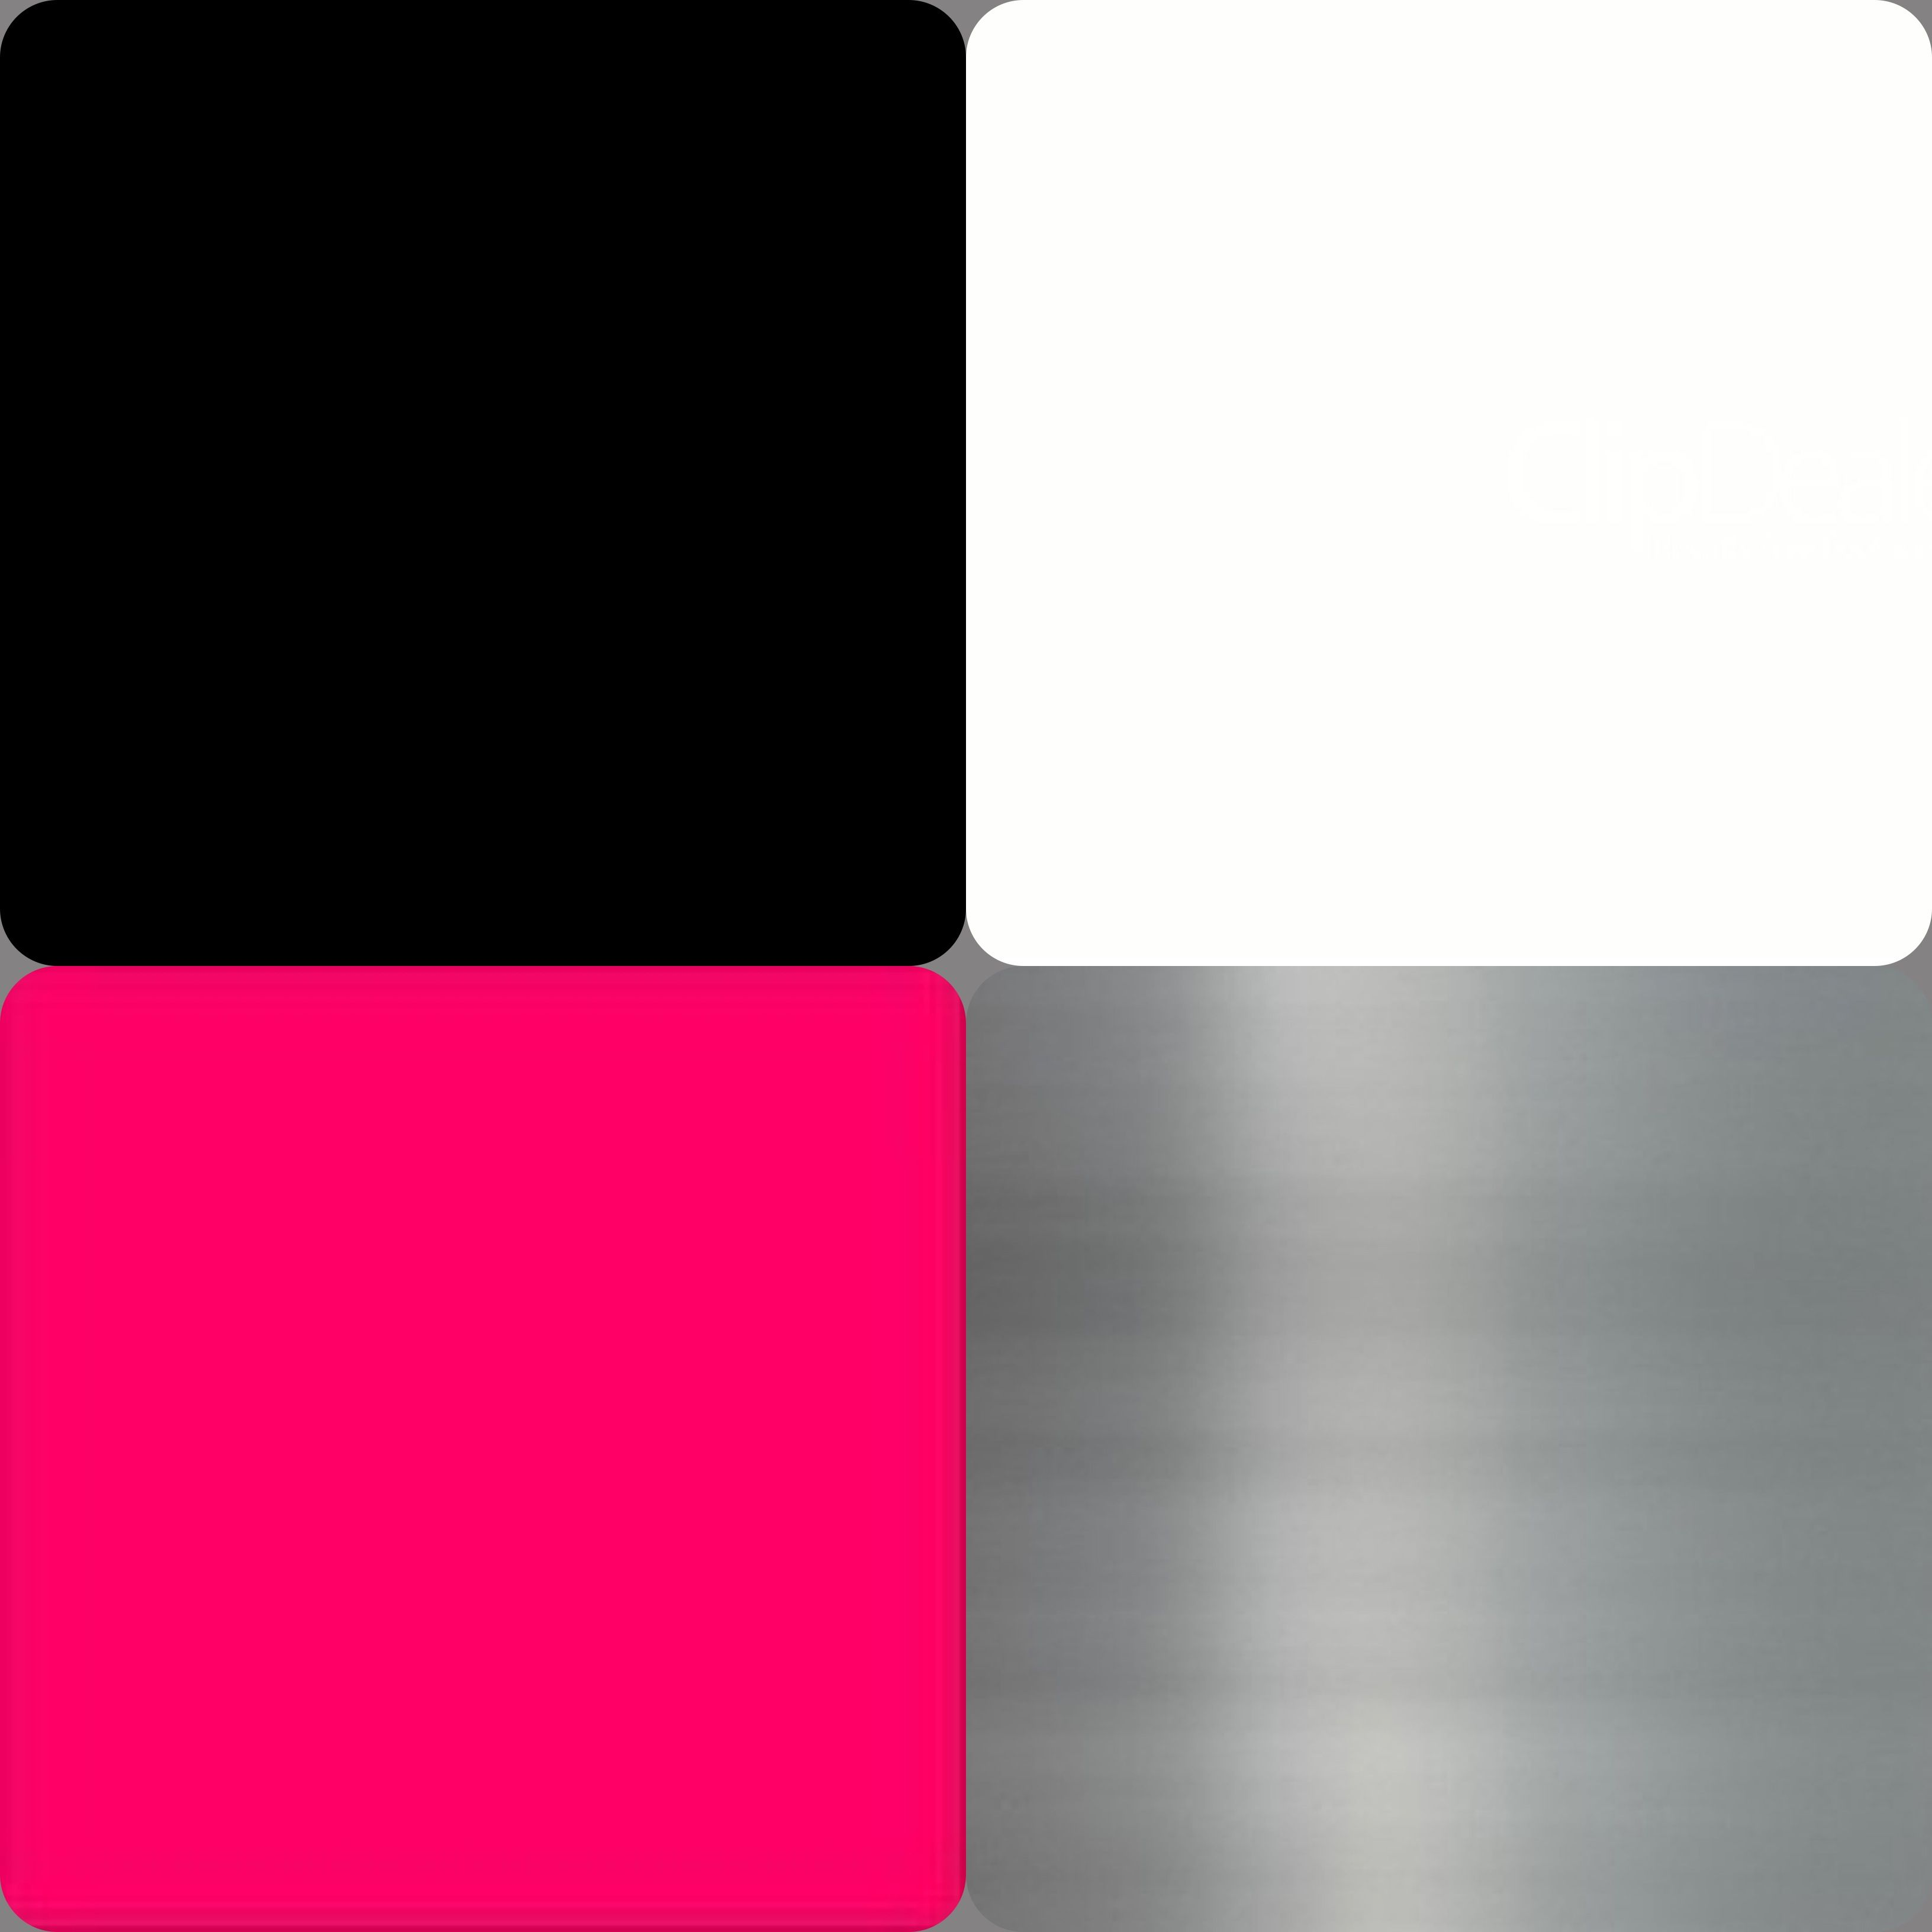 Bedroom Black And White Color Scheme Bedroom Waste Bins One Wall Bedroom Paint Ideas Bedroom Design Natural Style: {Color Scheme For My Bedroom} ~Black~White~Hot Pink~Brush